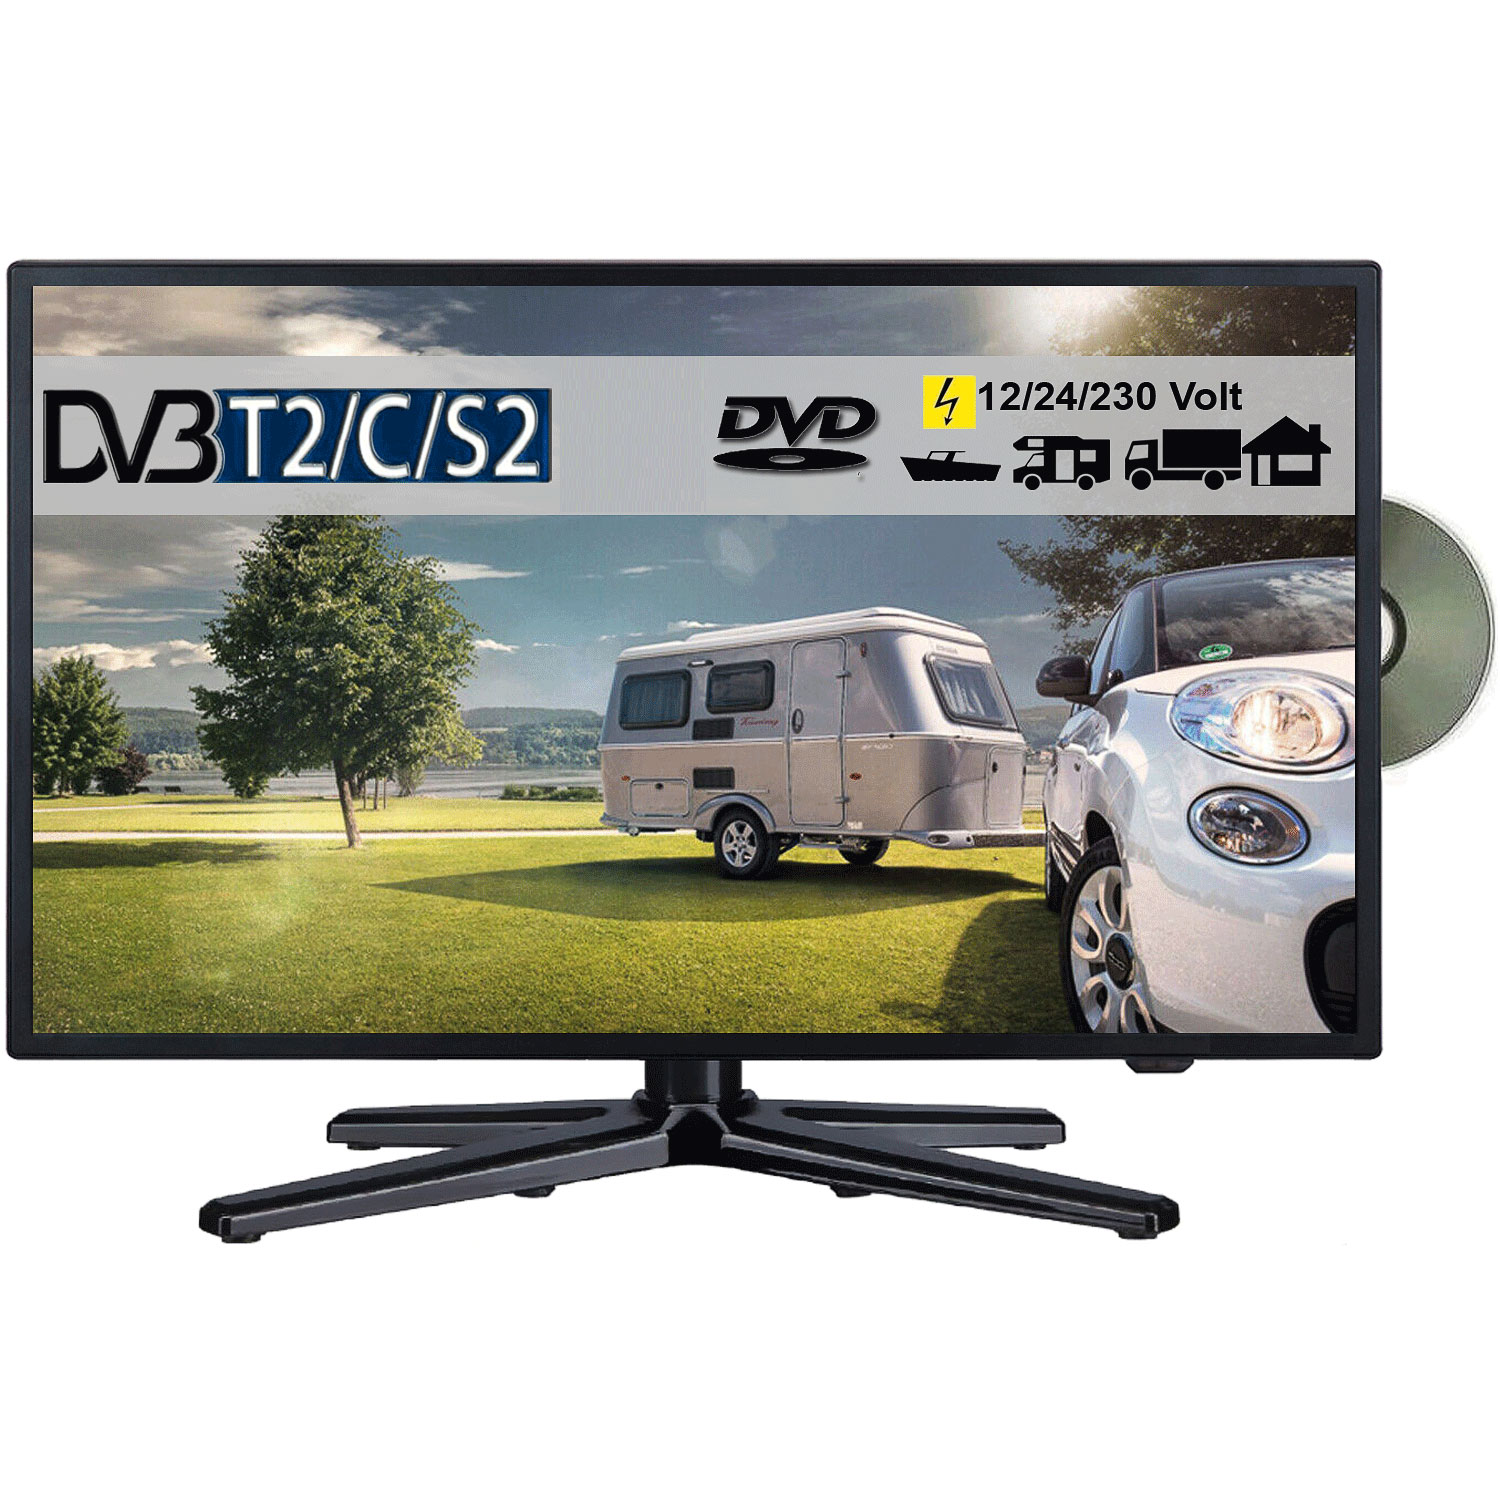 reflexion ldd 197 led full hd fernseher 19 zoll 48 cm tv mit dvb s2 c t dvd 12v. Black Bedroom Furniture Sets. Home Design Ideas